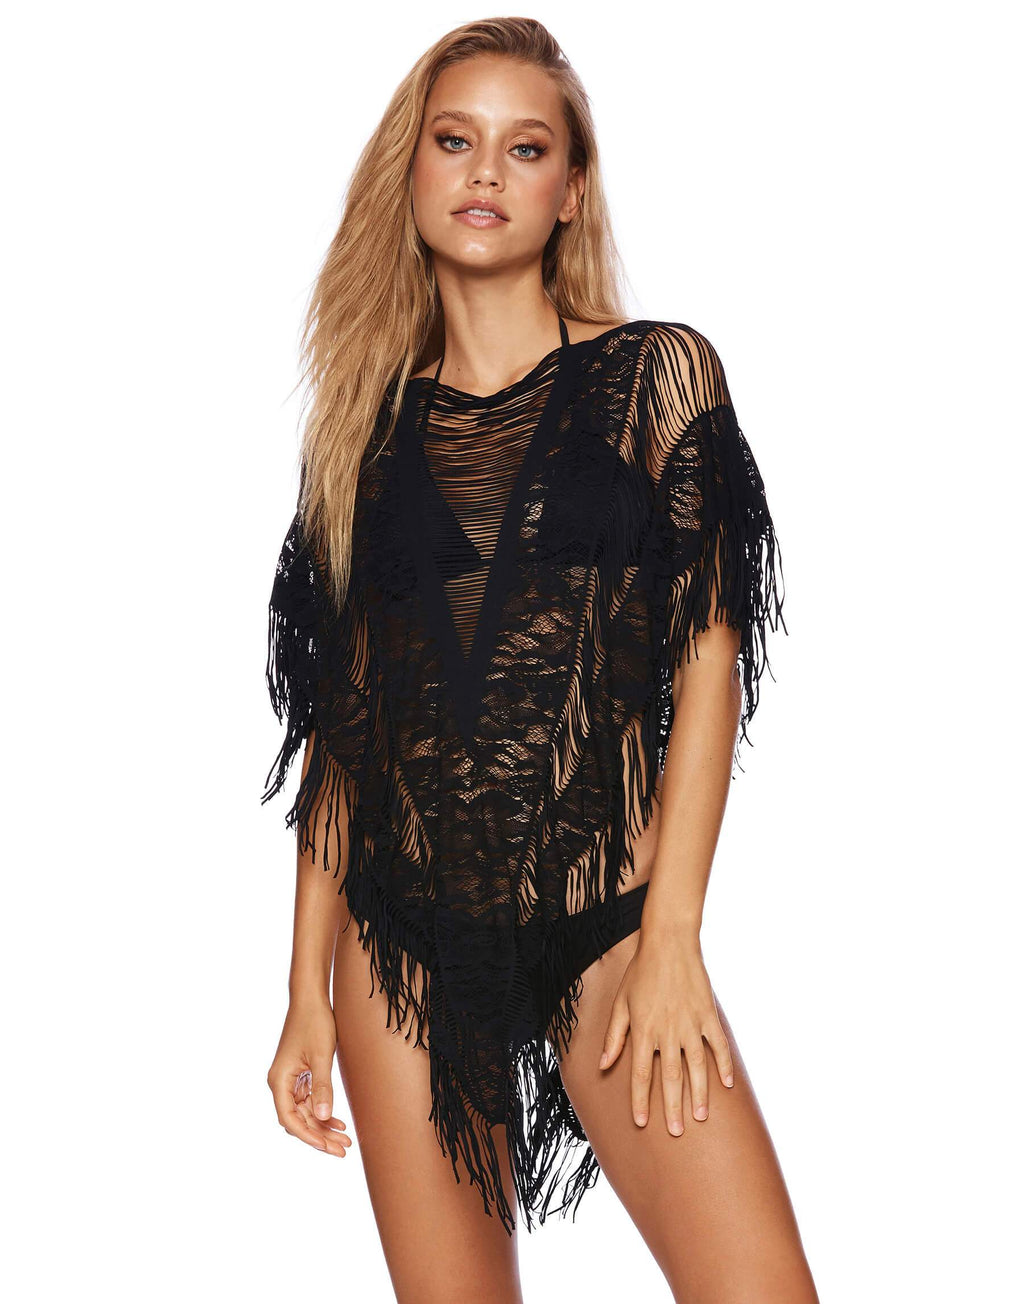 Indian Summer Lace Poncho - Black